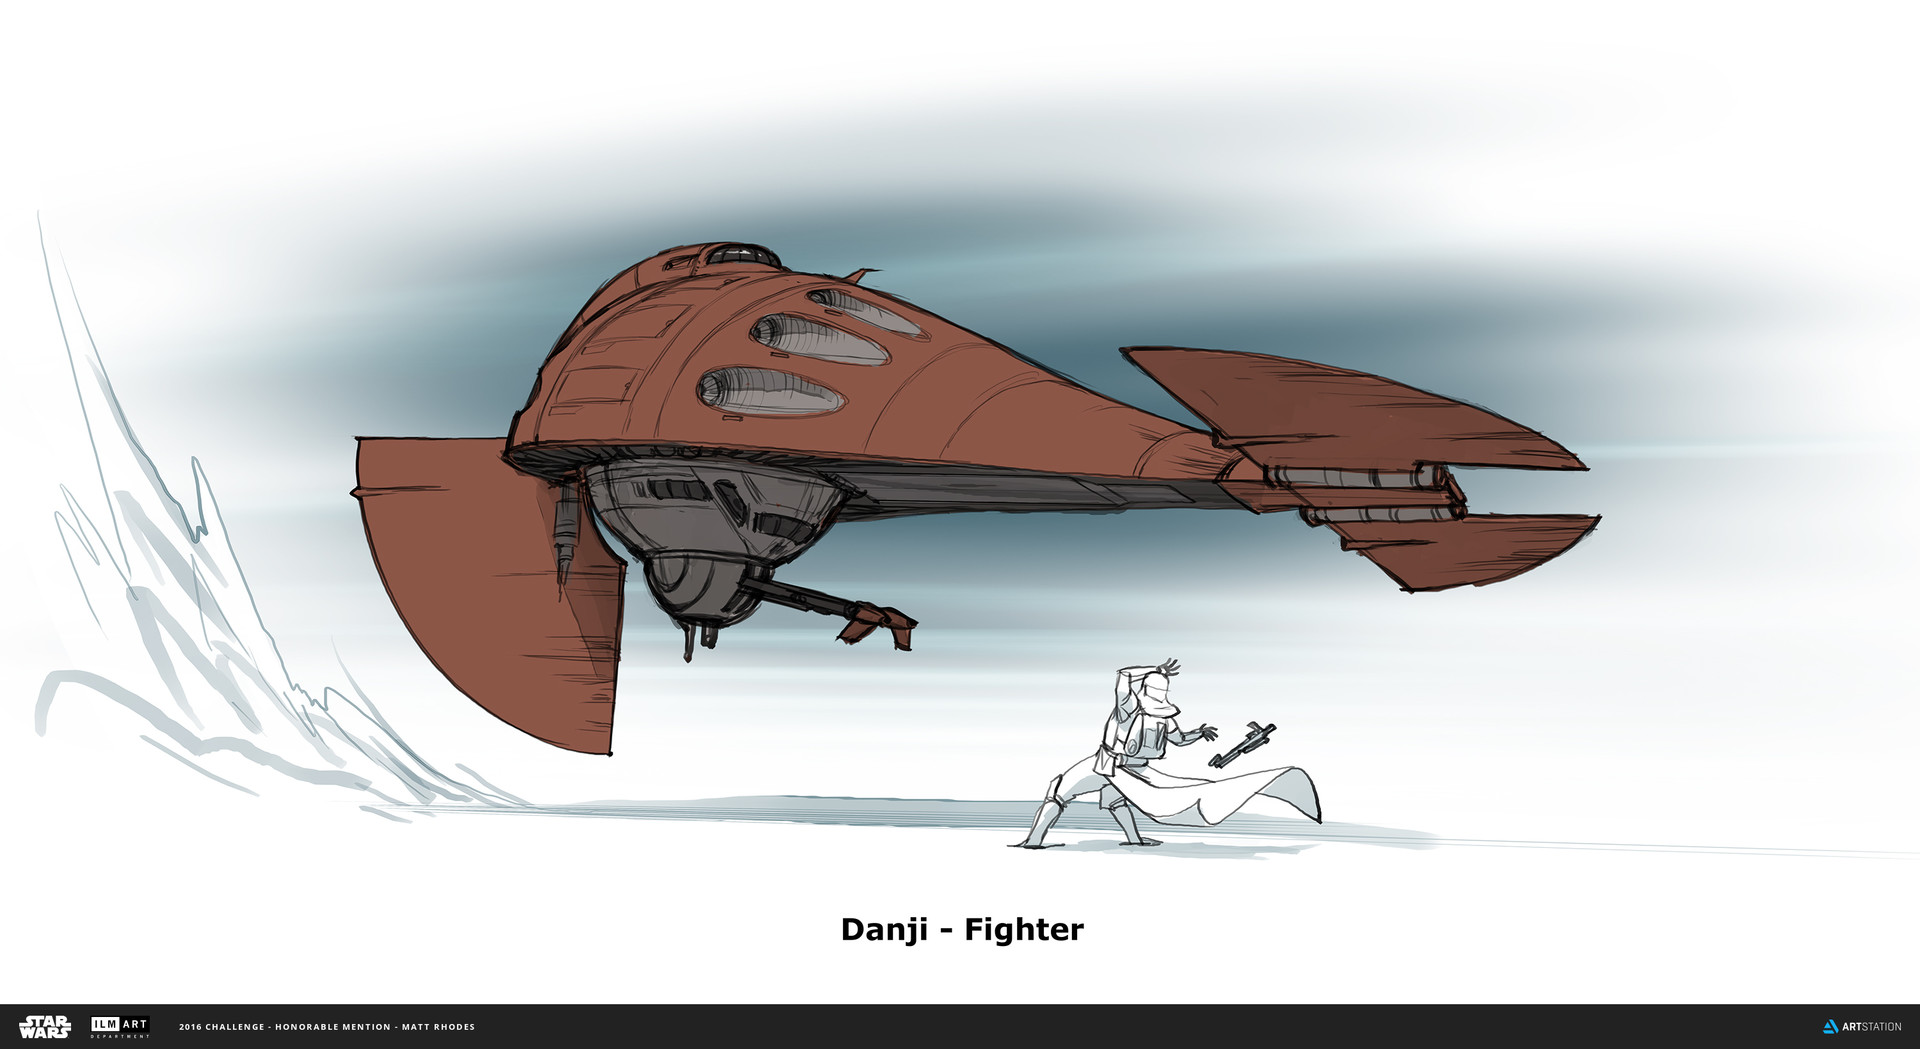 The Fighter is a 2-person craft, pilot and gunner like many star wars fighter craft. It can land on the ground by folding its fore-wings down. You can see in the reference that this is based on an upside down oil lamp.